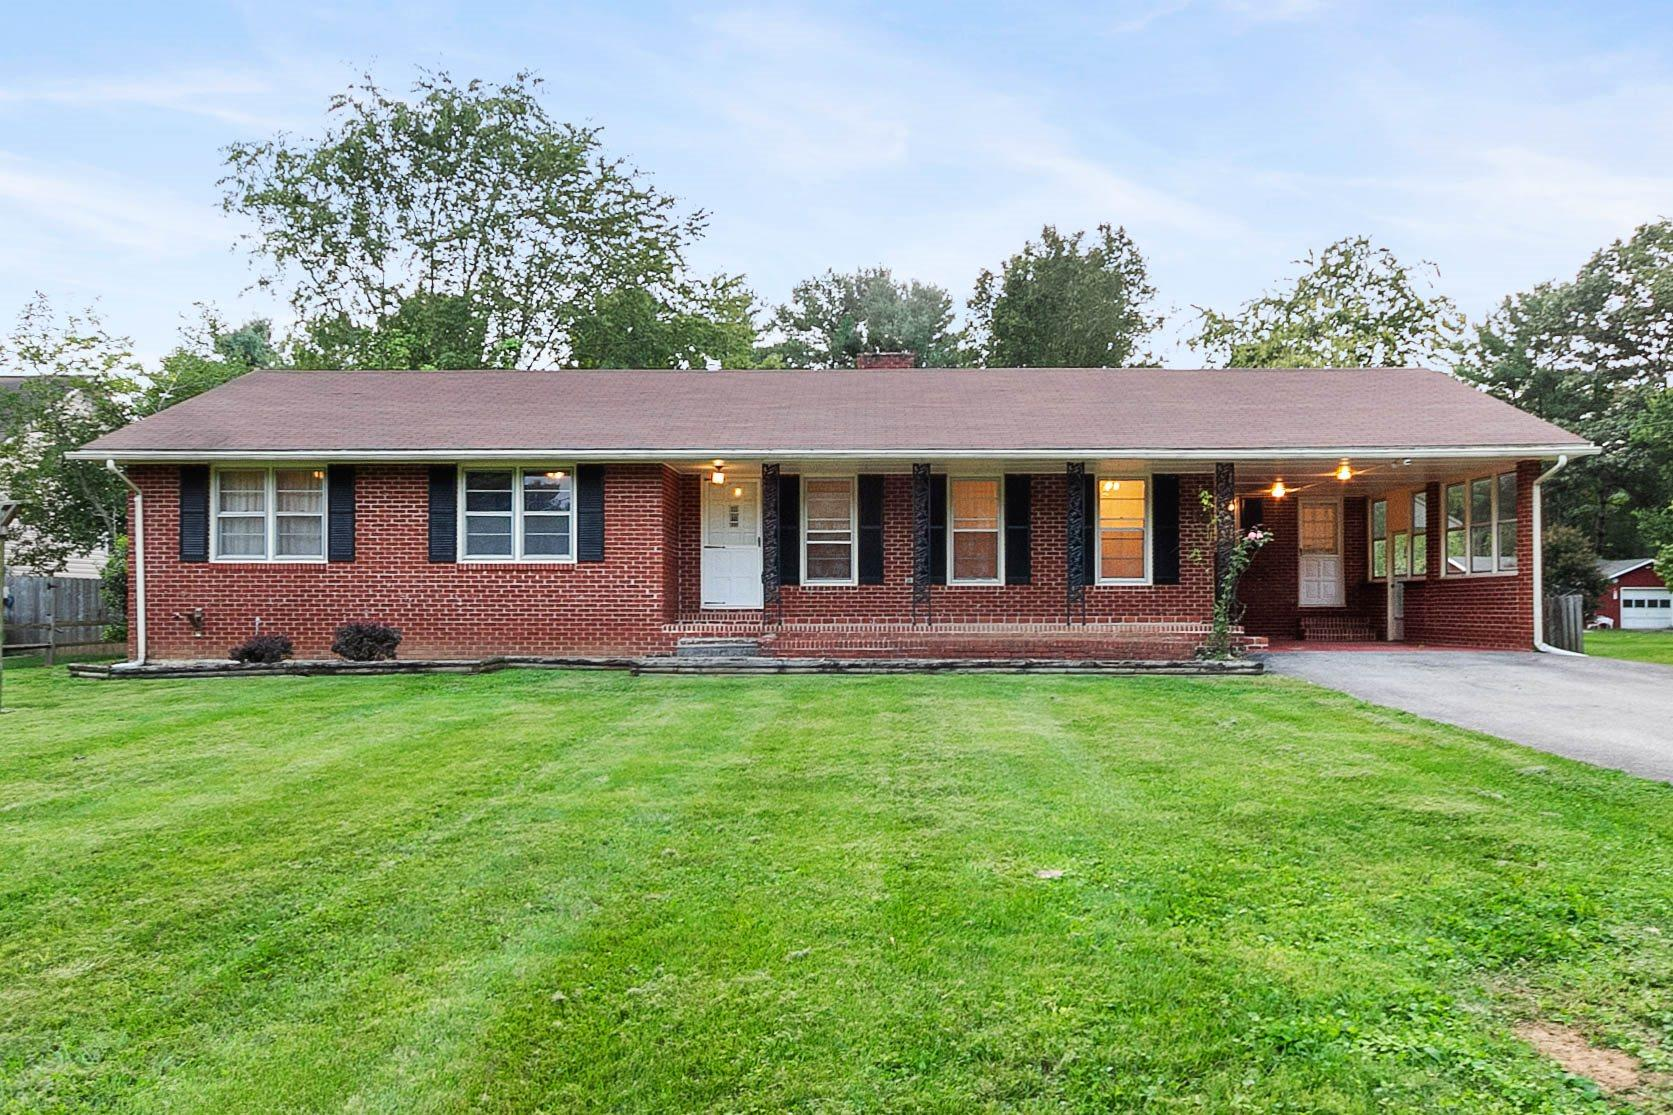 Nice 3 bedroom, 2 bath Brick Ranch with a partially finished basement, paved driveway, and carport.  Formal Living room/dining room, eat-in kitchen, and a family room with brick fireplace.  Sun-room off the family room that opens onto the deck. Mature trees on a flat 0.57 Acre lot with a storage building.  Priced Under Tax Assessment! Heat Pump December 2013, Roof August 2012, & Updated 200 amp electric box and wiring. Ducted Wood Furnace, too.   Conveniently located between Christiansburg/Blacksburg and Salem/Roanoke.